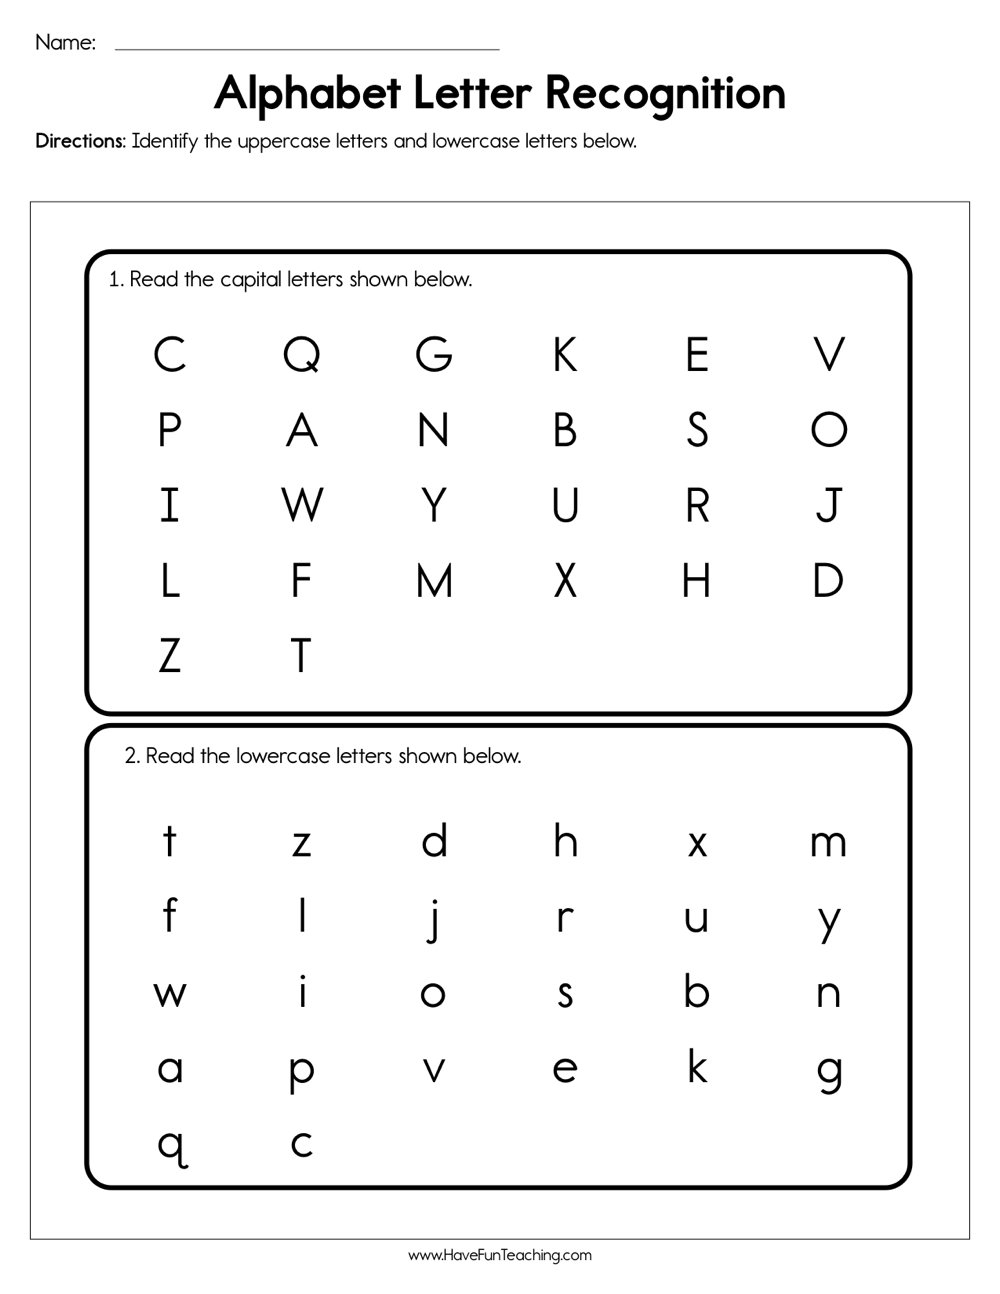 Alphabet Letter Recognition Assessment Have Fun Teaching